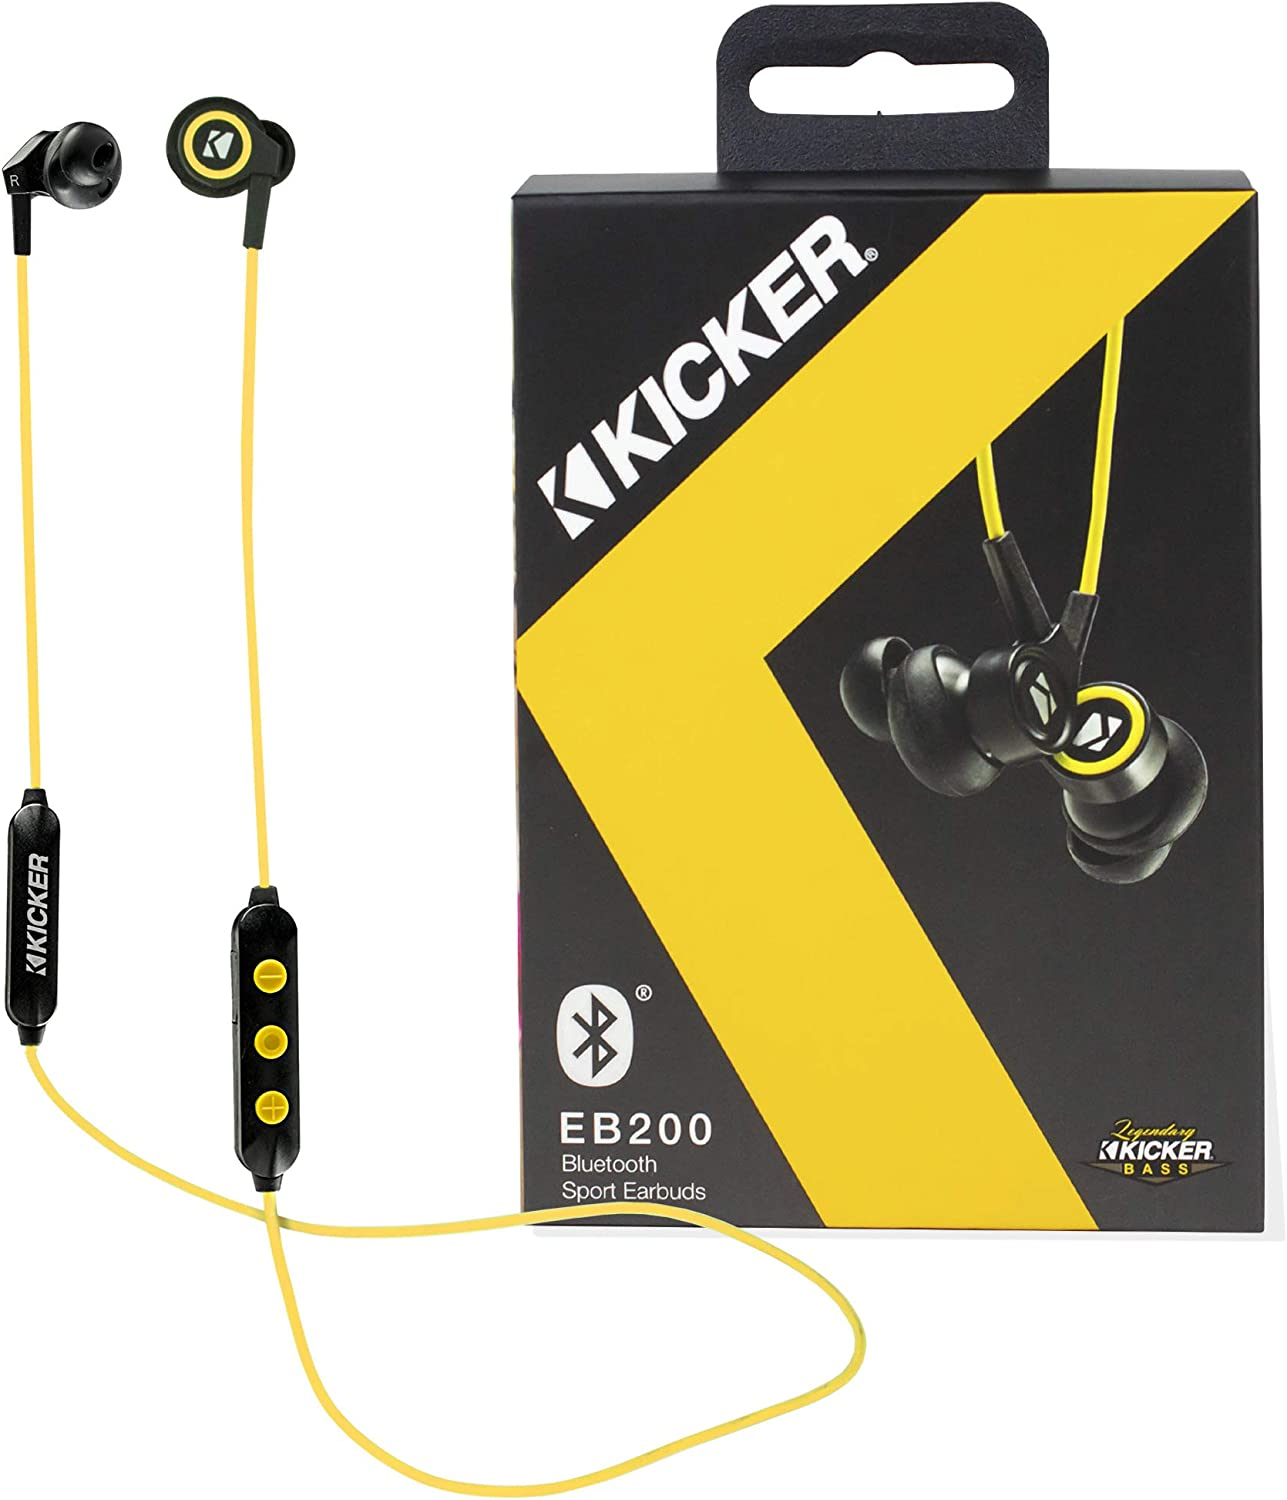 Kicker Bluetooth Wireless Earbuds Noise Canceling Headphones Earbuds w Built-in Mic with Multi Function Button Volume Control Sweat and Water Resistant